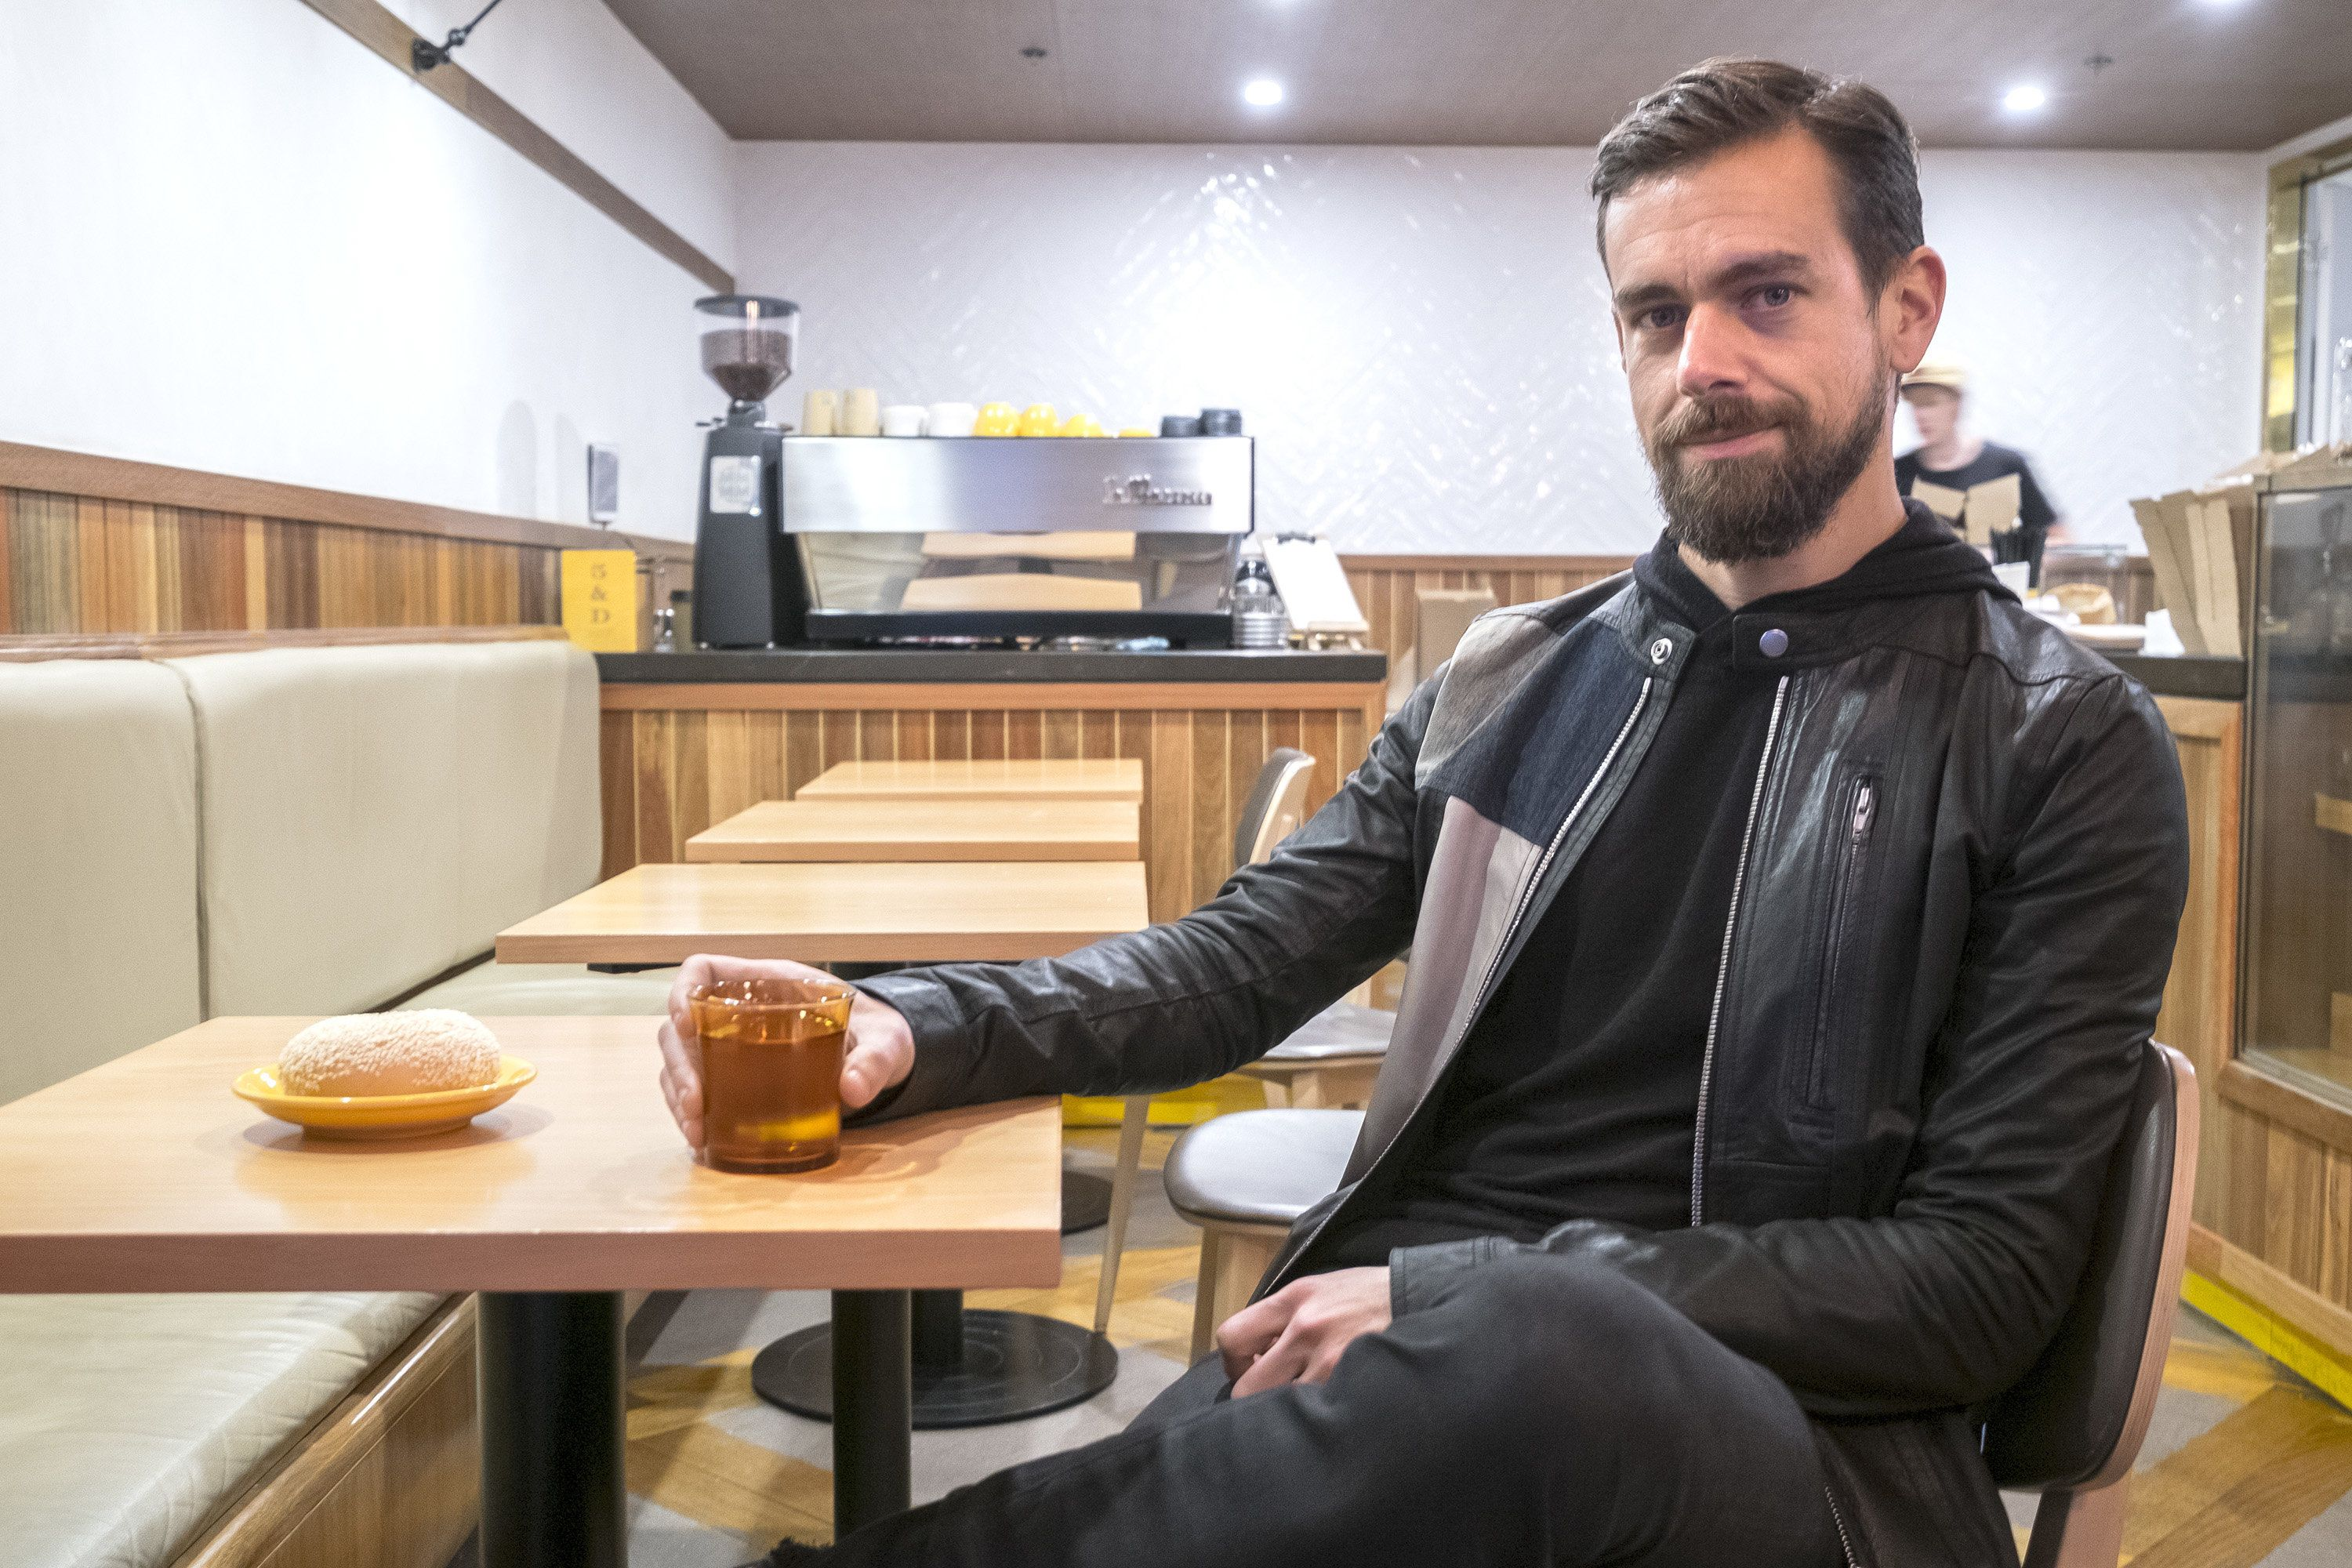 Twitter CEO Jack Dorsey, pictured in 2016, raised eyebrows Wednesday by going on Sean Hannity's radio show.